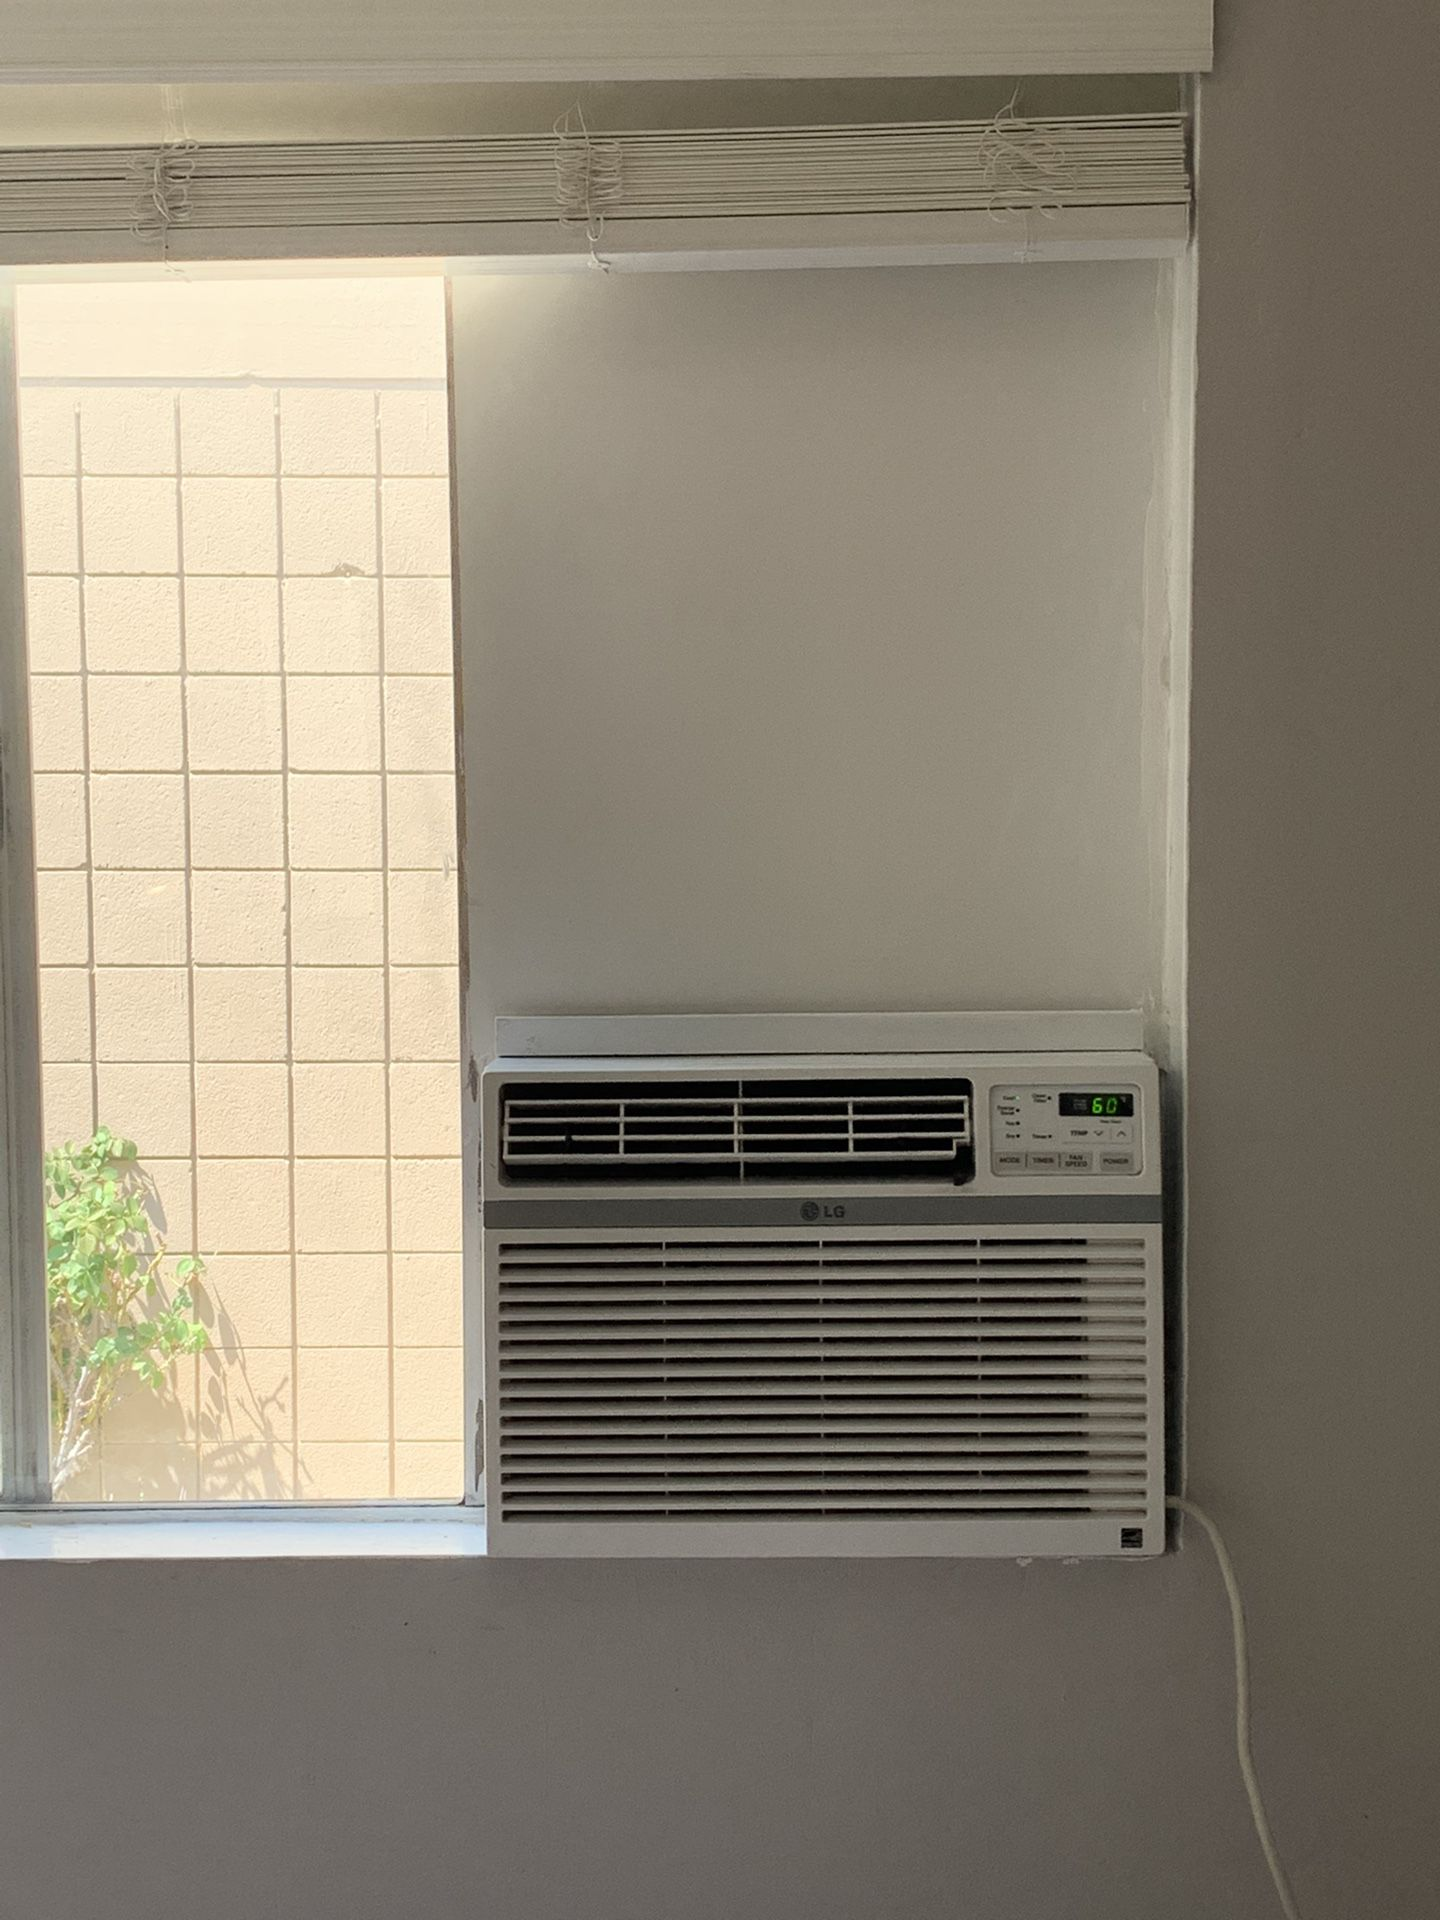 I Sell,Deliver And Install AC Units Professionally Installed All Areas In LA